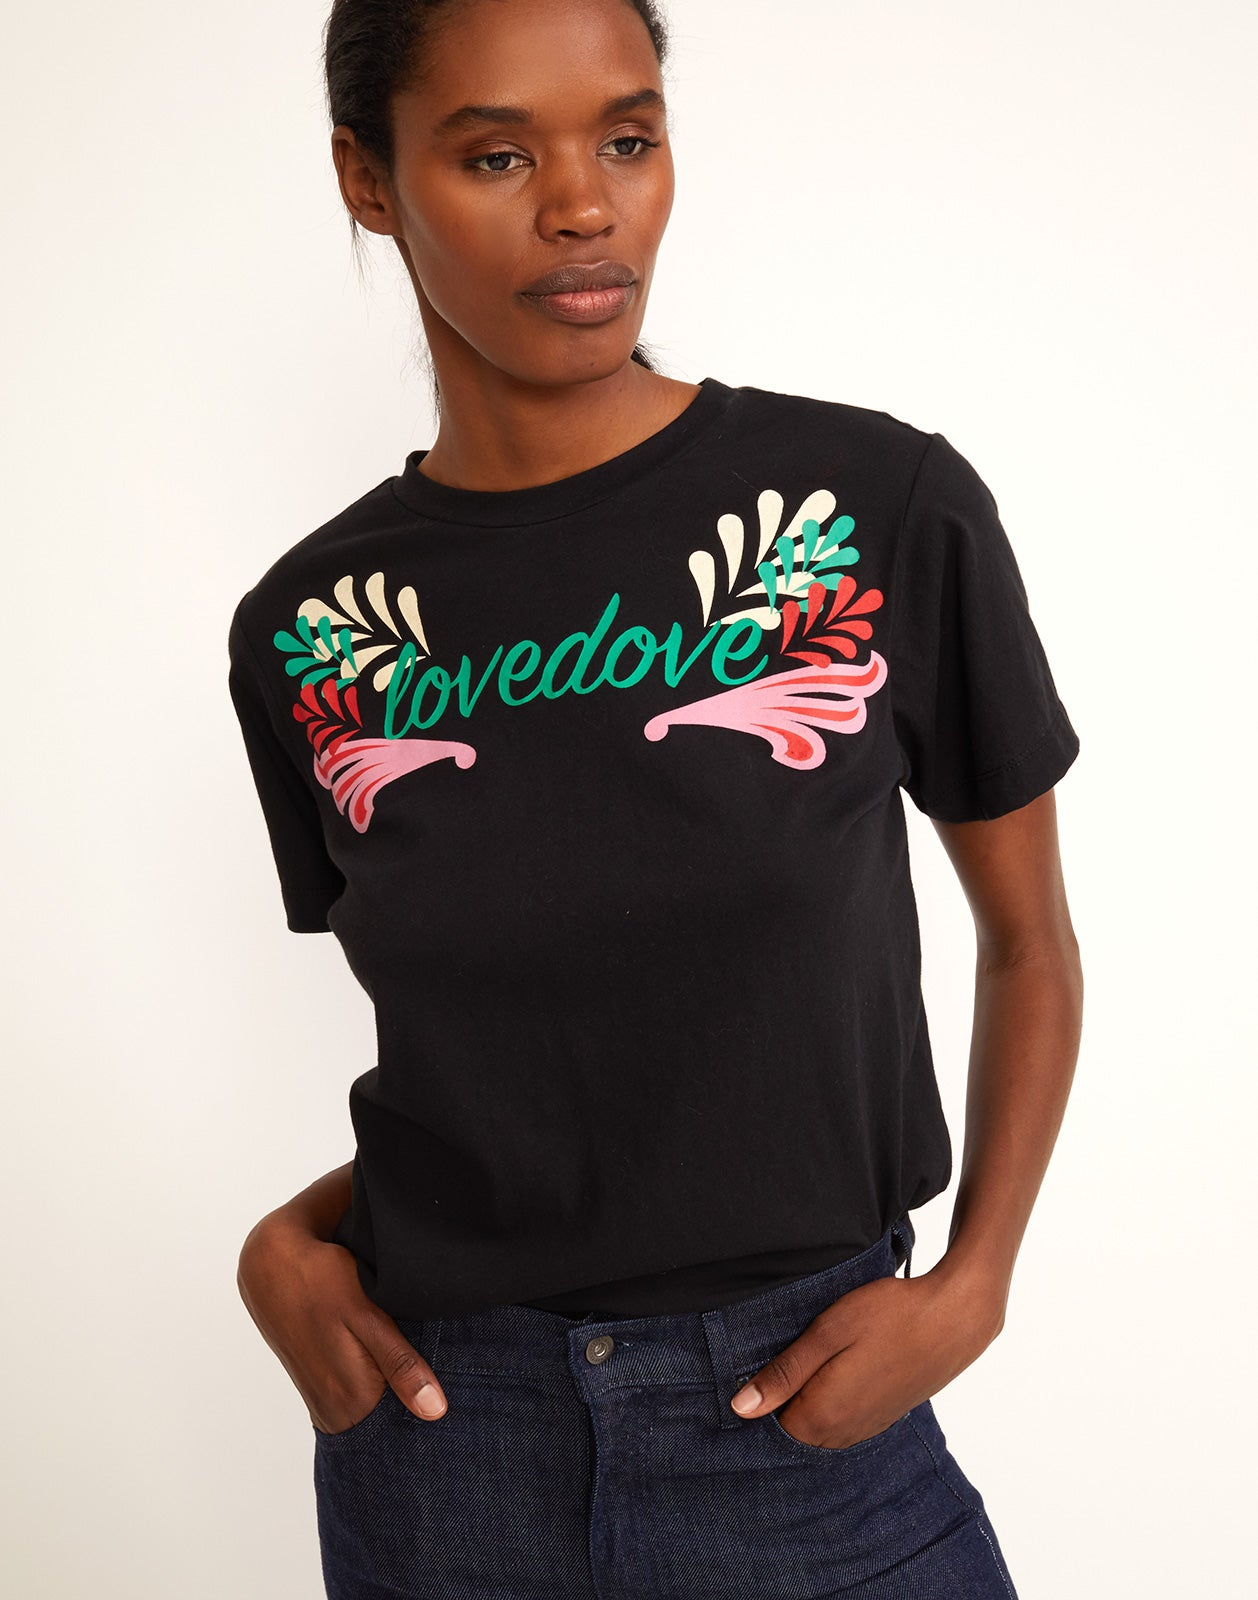 Front view of model wearing the 'lovedove' printed tee in black.